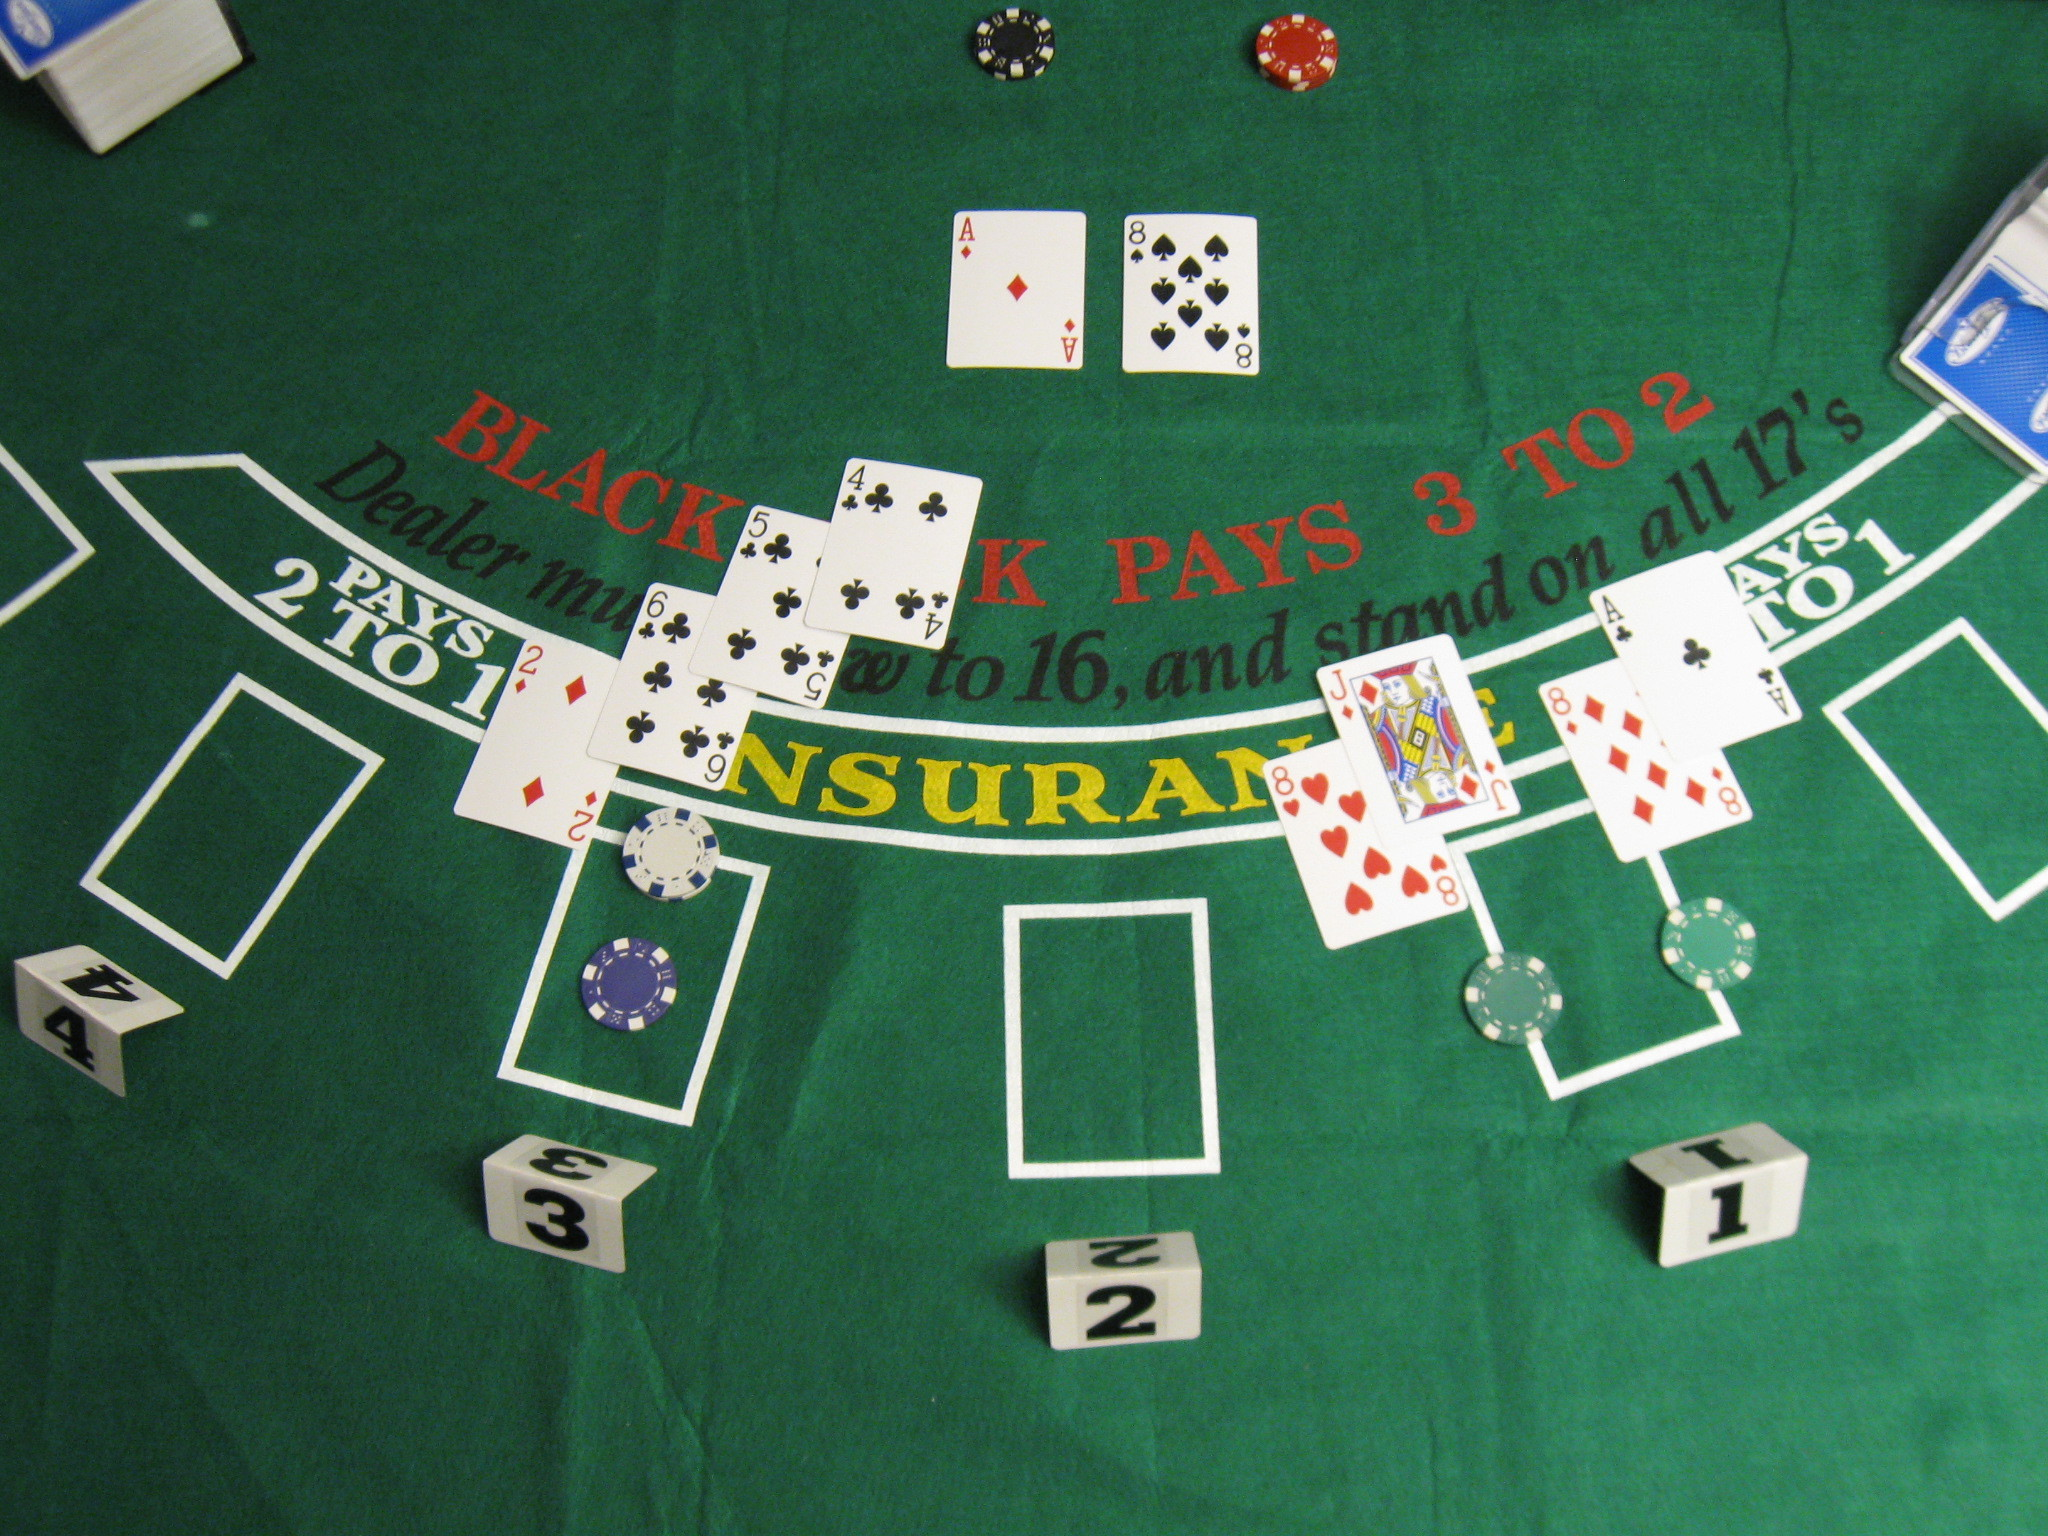 Gratis casinoLive247 com blackjack trucos 894661